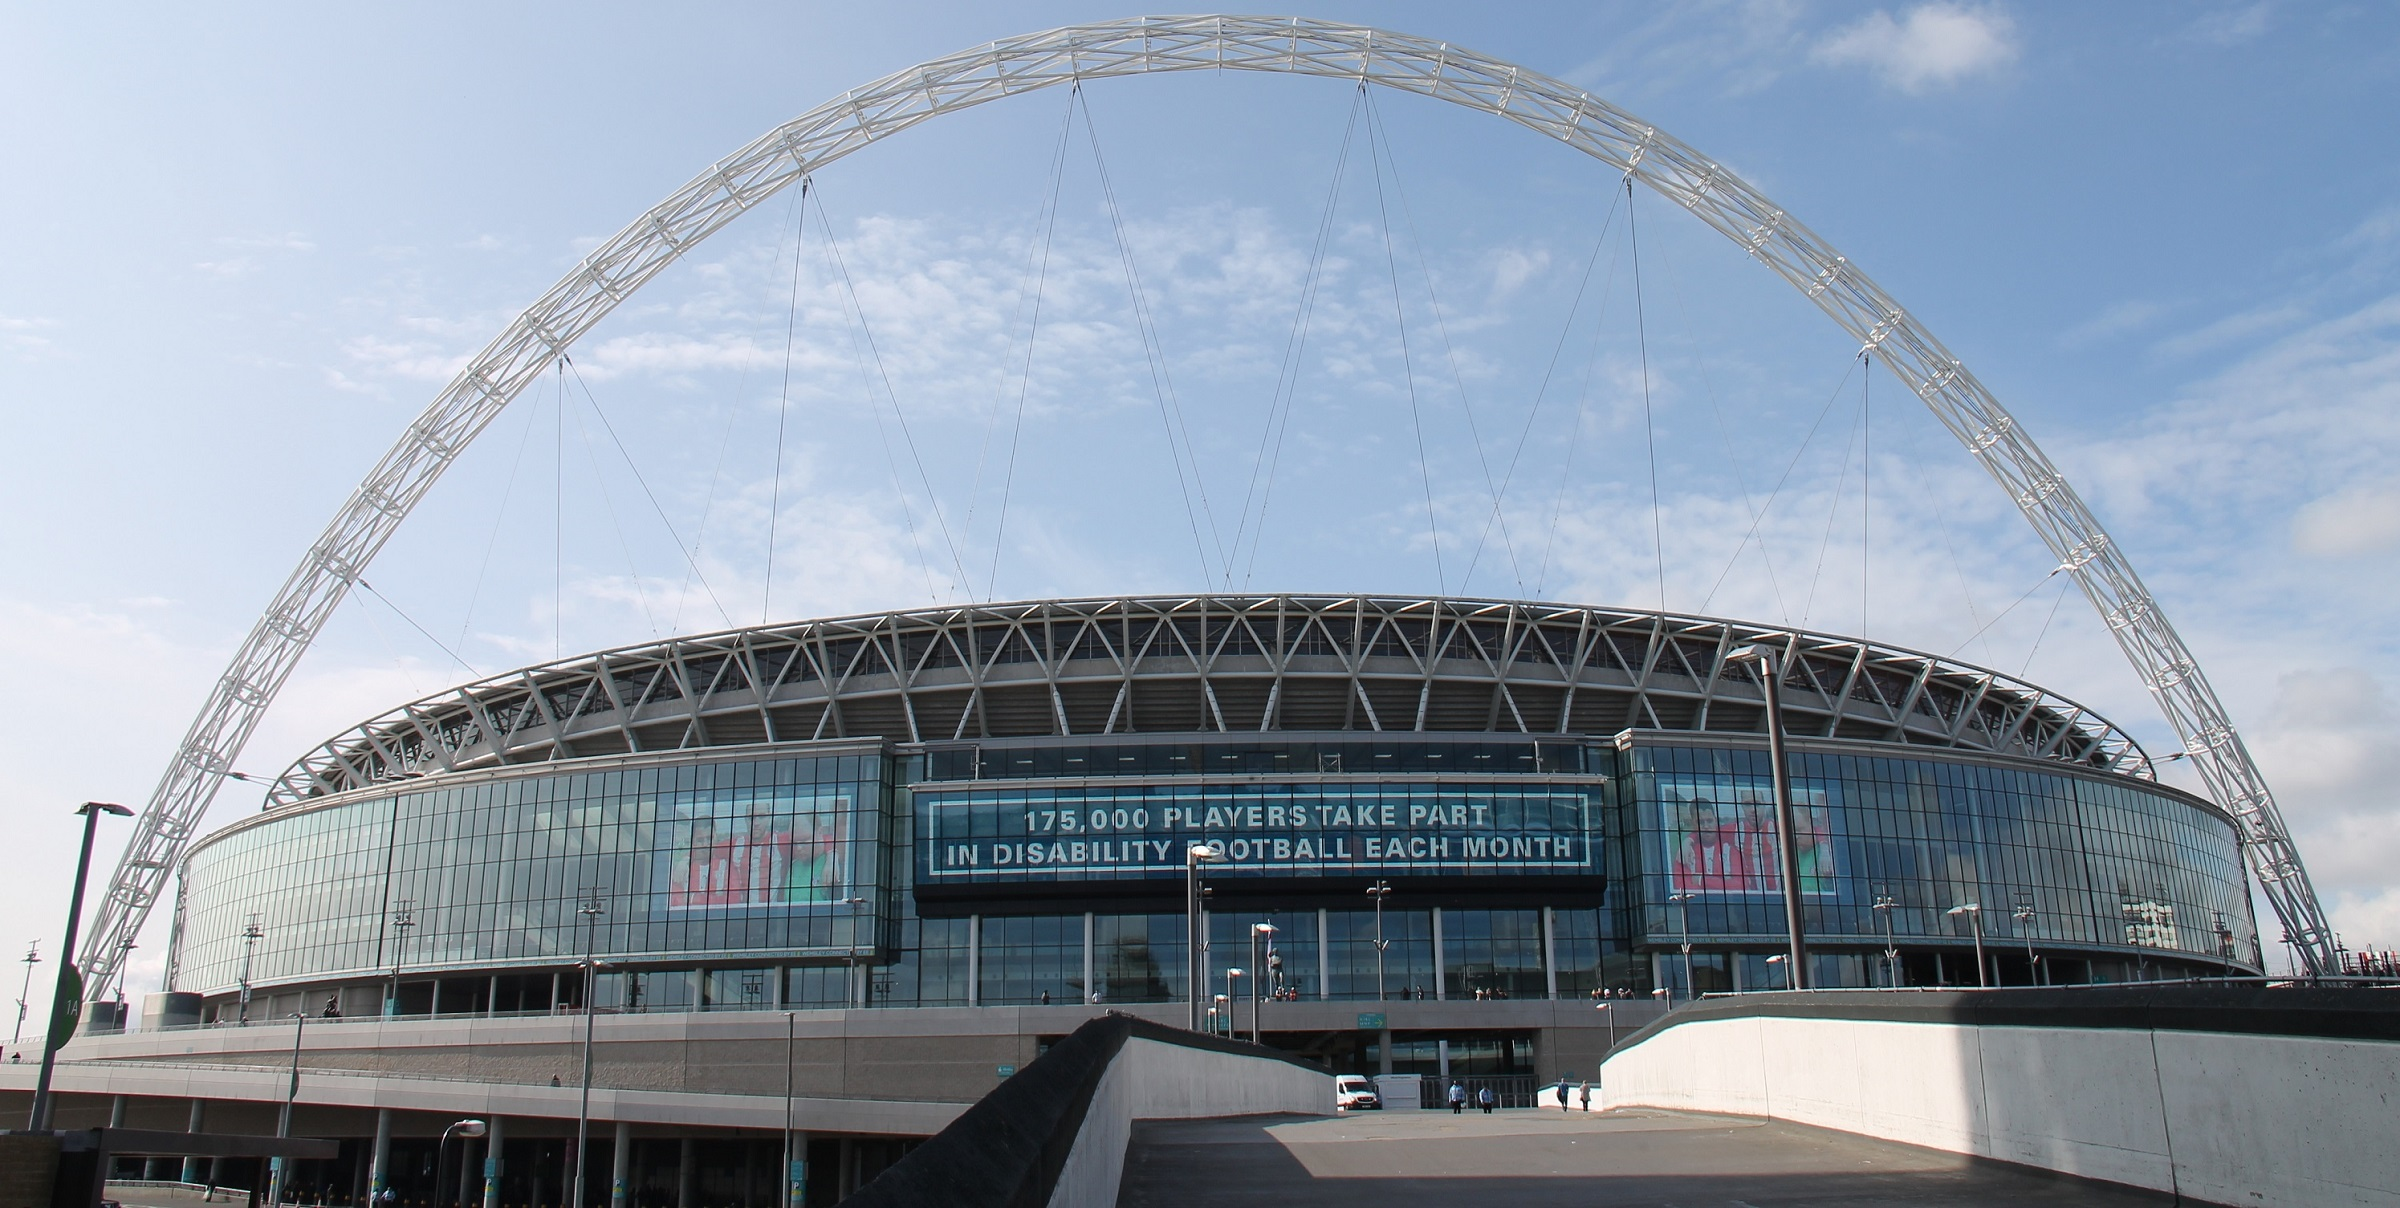 Information for supporters as excitement builds ahead of Wembley trip